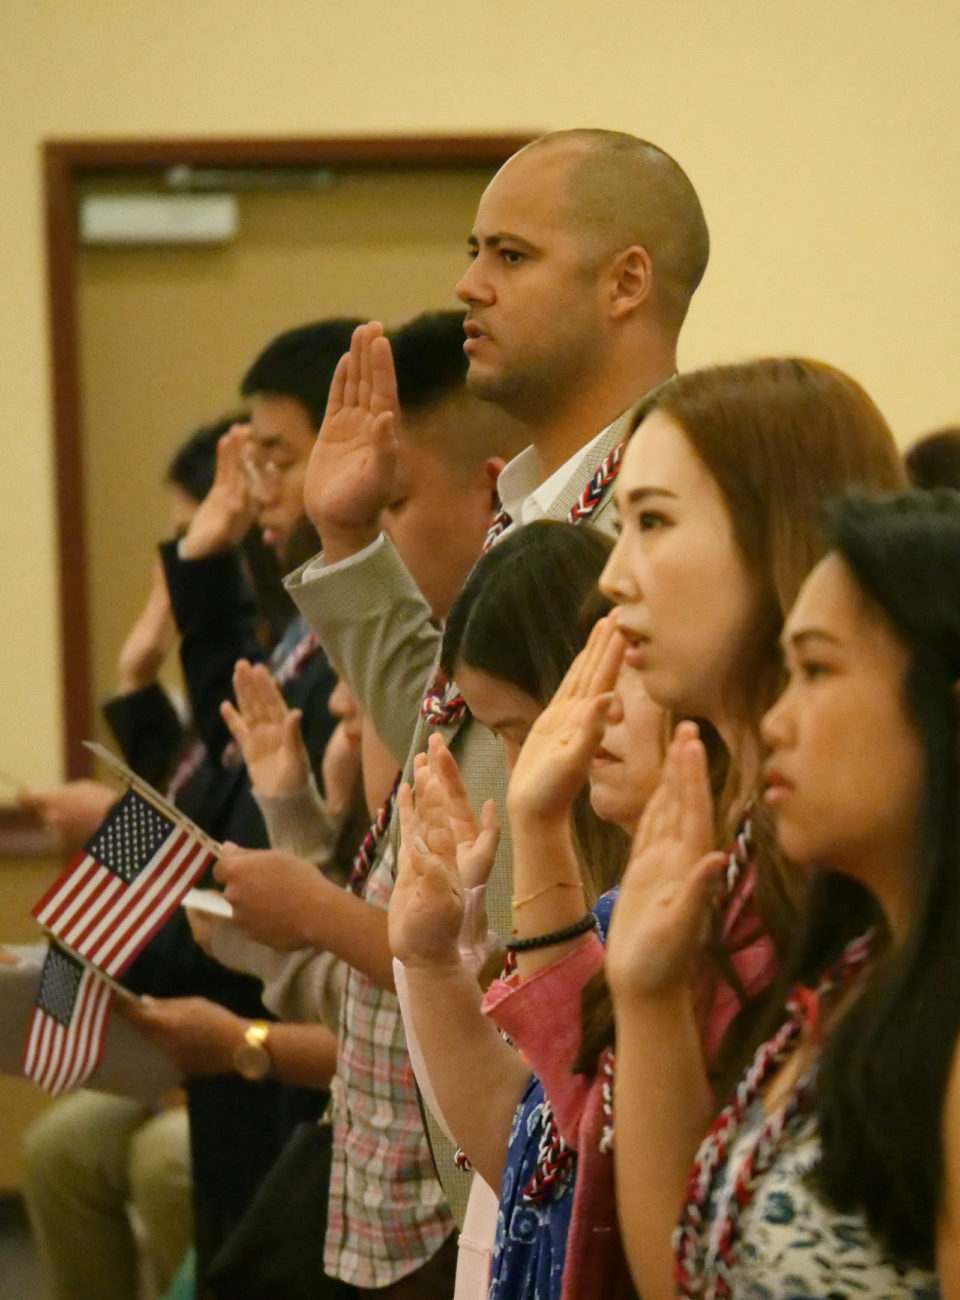 Approximately 50 citizenship applicants raised their hands to pledge allegiance and be sworn in as new US citizens during a naturalization ceremony at Iolani School in Honolulu, HI, on Wednesday, February 12, 2020.